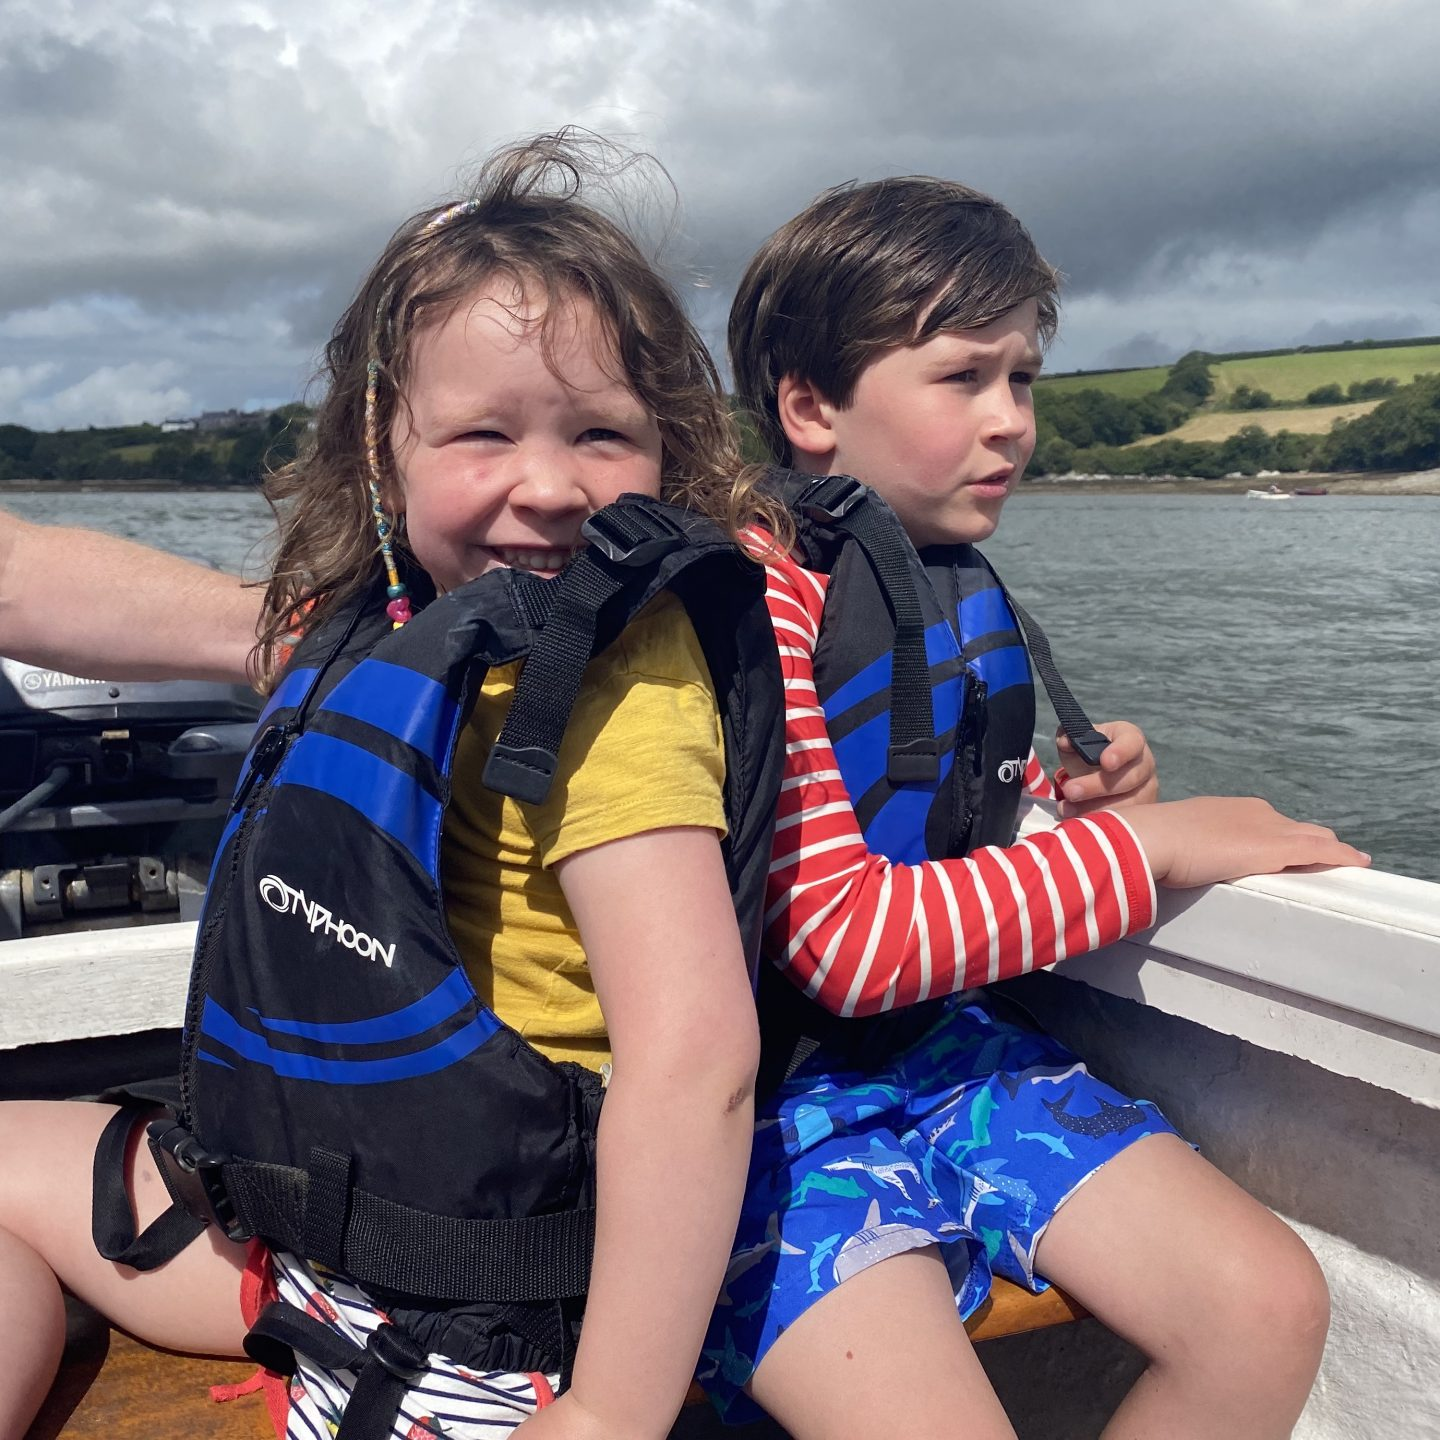 A young  boy and girl sat on a boat